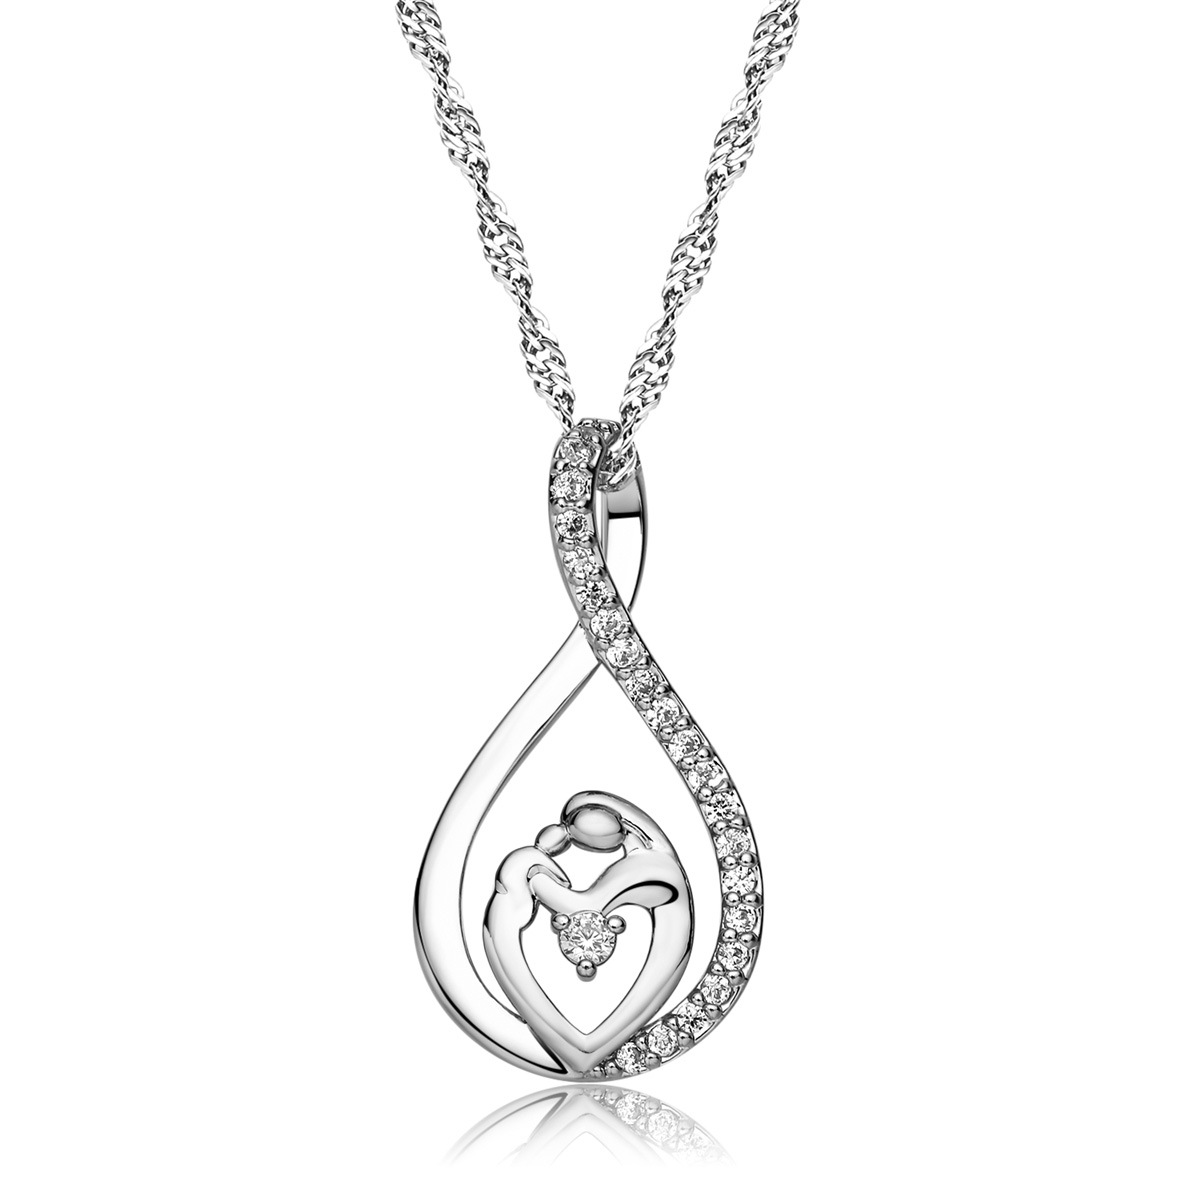 Mother's Day Silver Mother and Child Love Heart Pendant Necklace Gifts